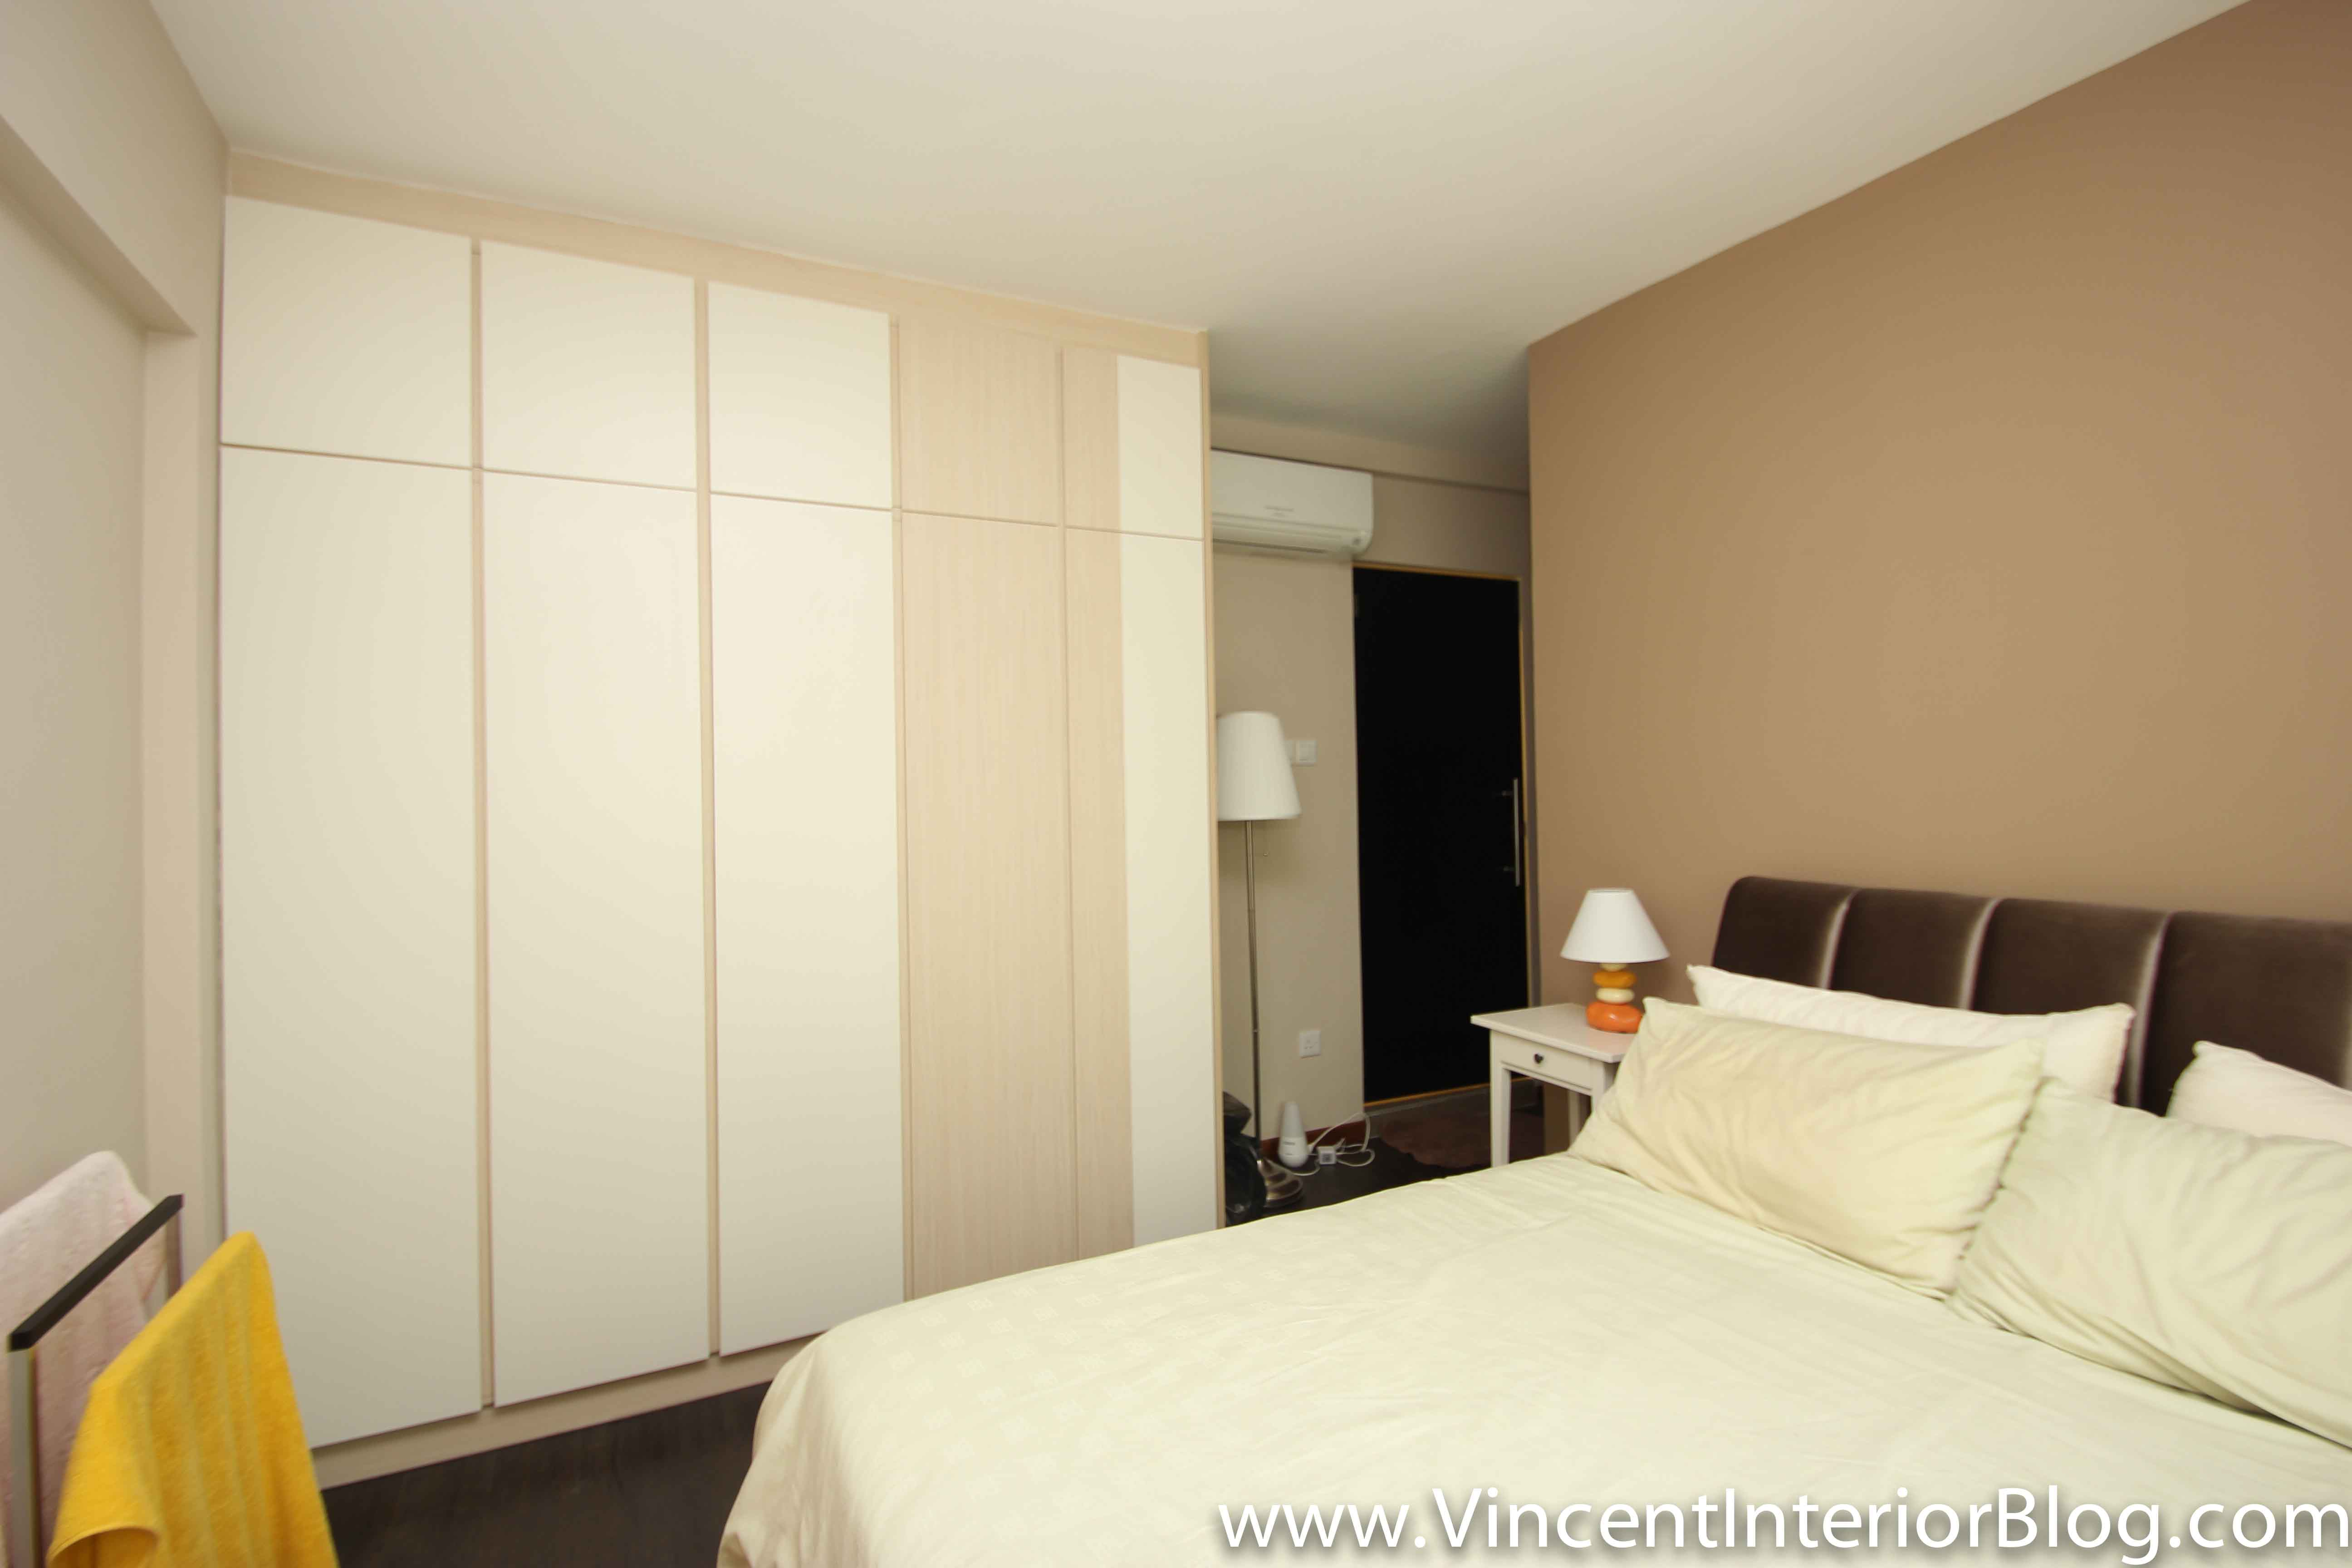 Punggol 4 Room Hdb Renovation Part 9 Day 40 Project Completed Vincent Interior Blog